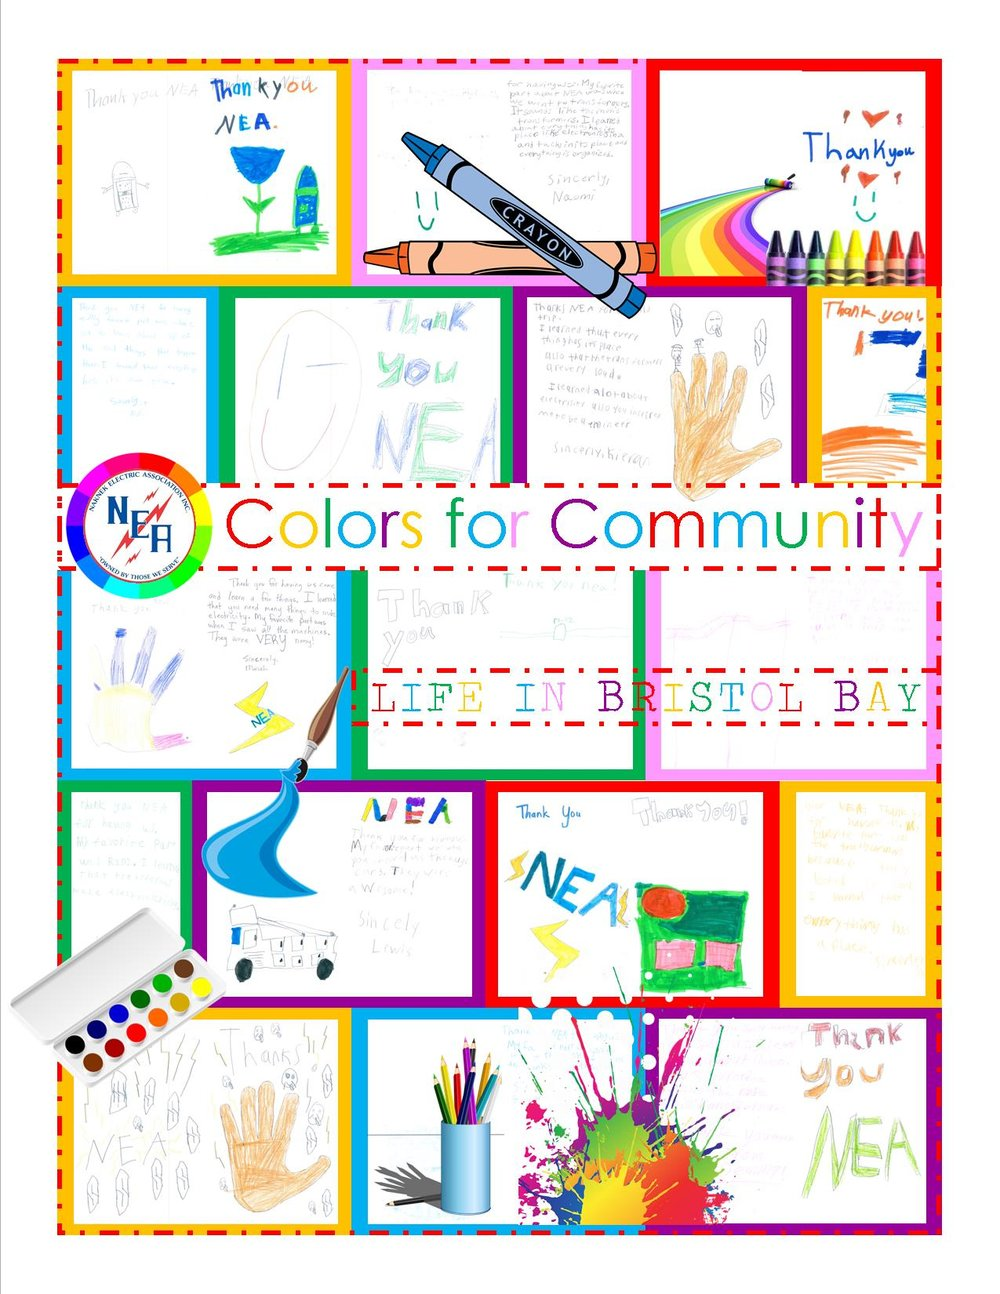 080117 Coloring Contest.jpg